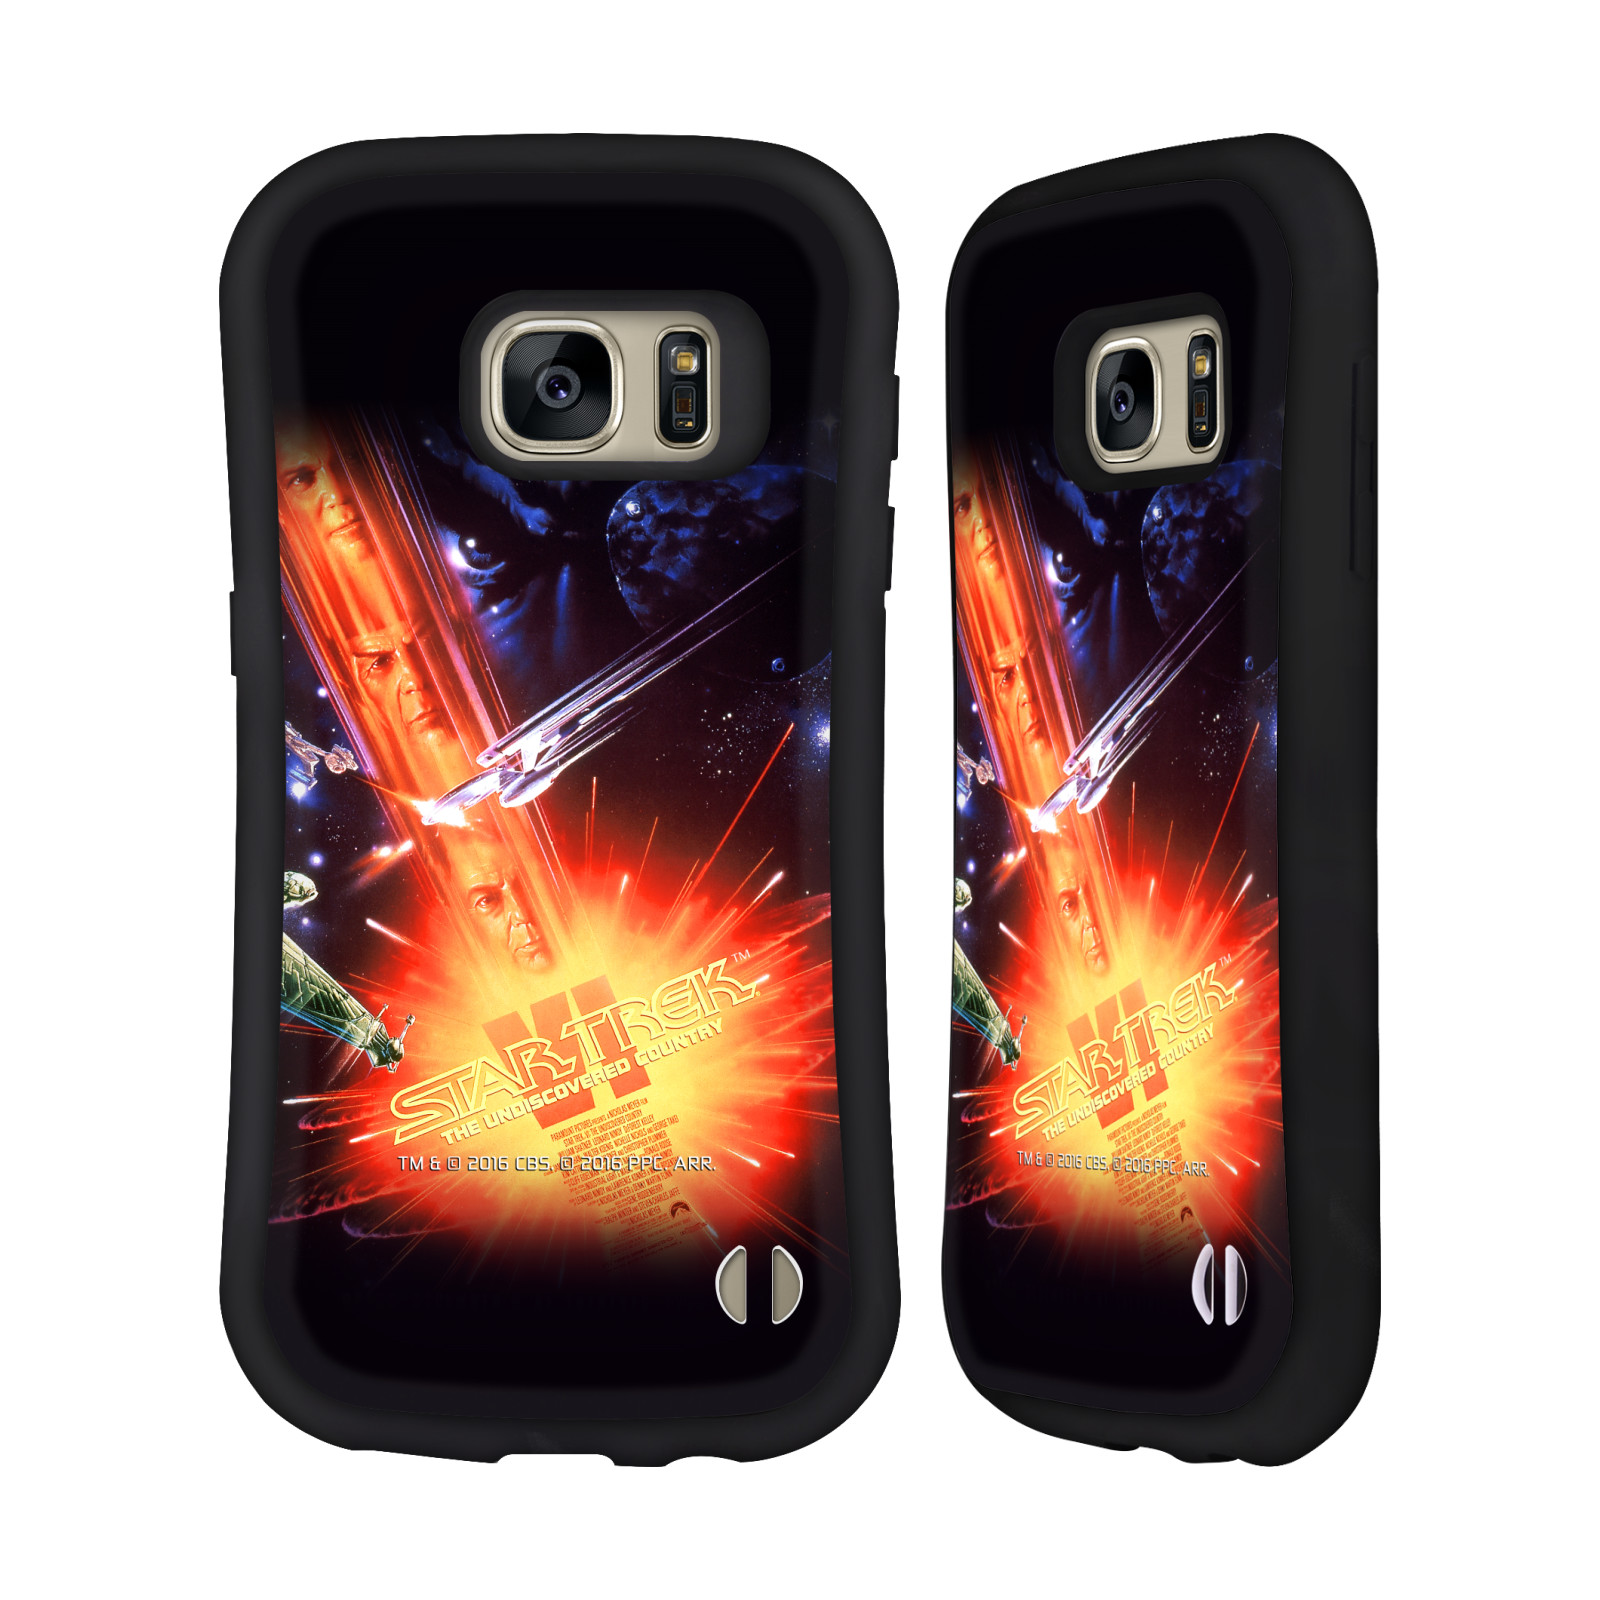 OFFICIAL STAR TREK MOVIE POSTERS TOS HYBRID CASE FOR SAMSUNG PHONES